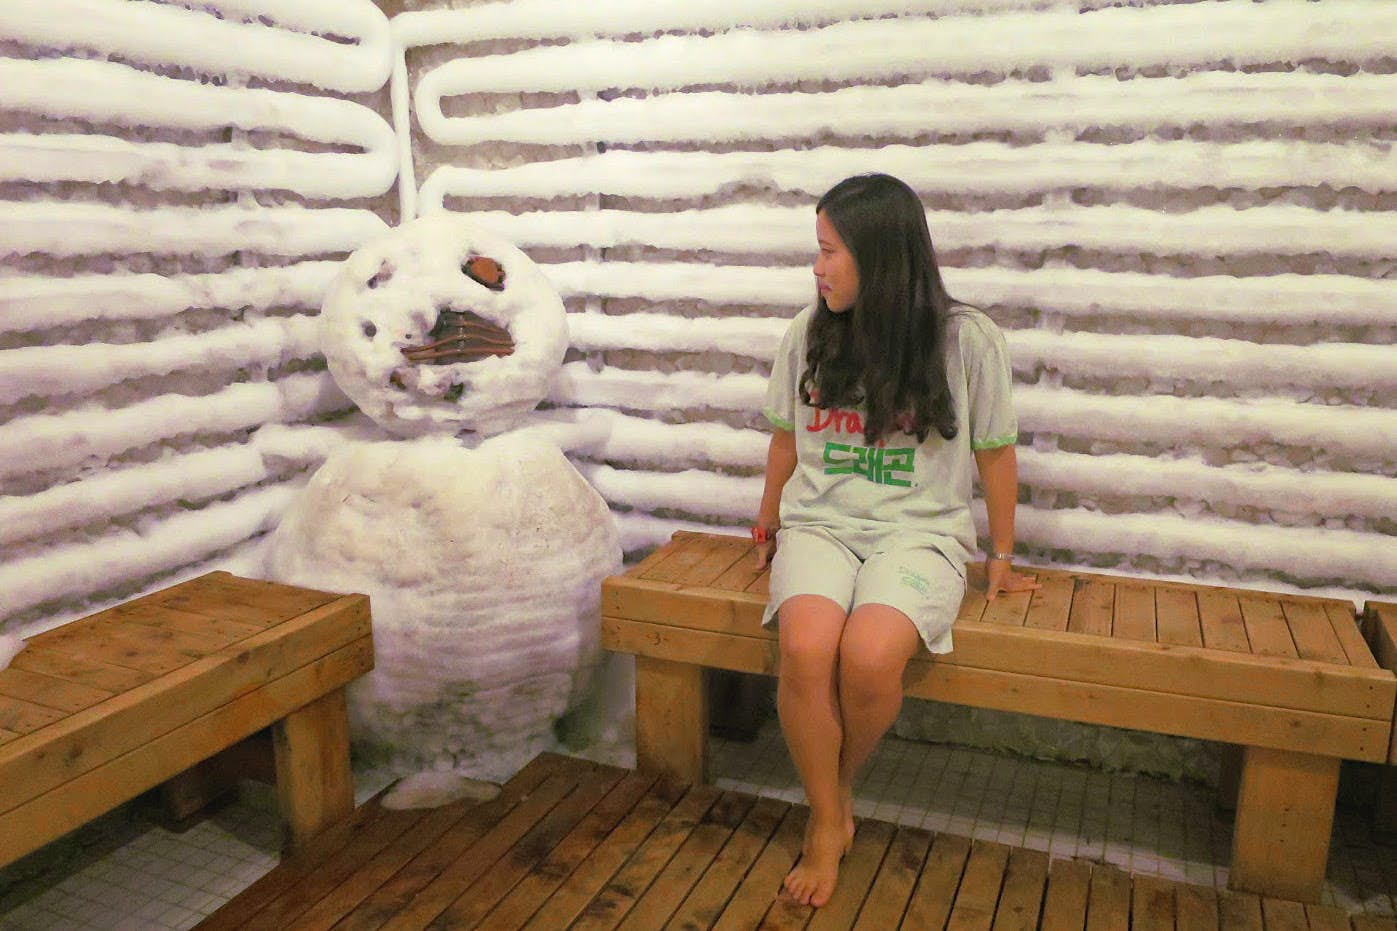 Cool down: the ice room at Dragon Hill Spa in Seoul is a breath of fresh air. Image by Megan Eaves / Lonely Planet